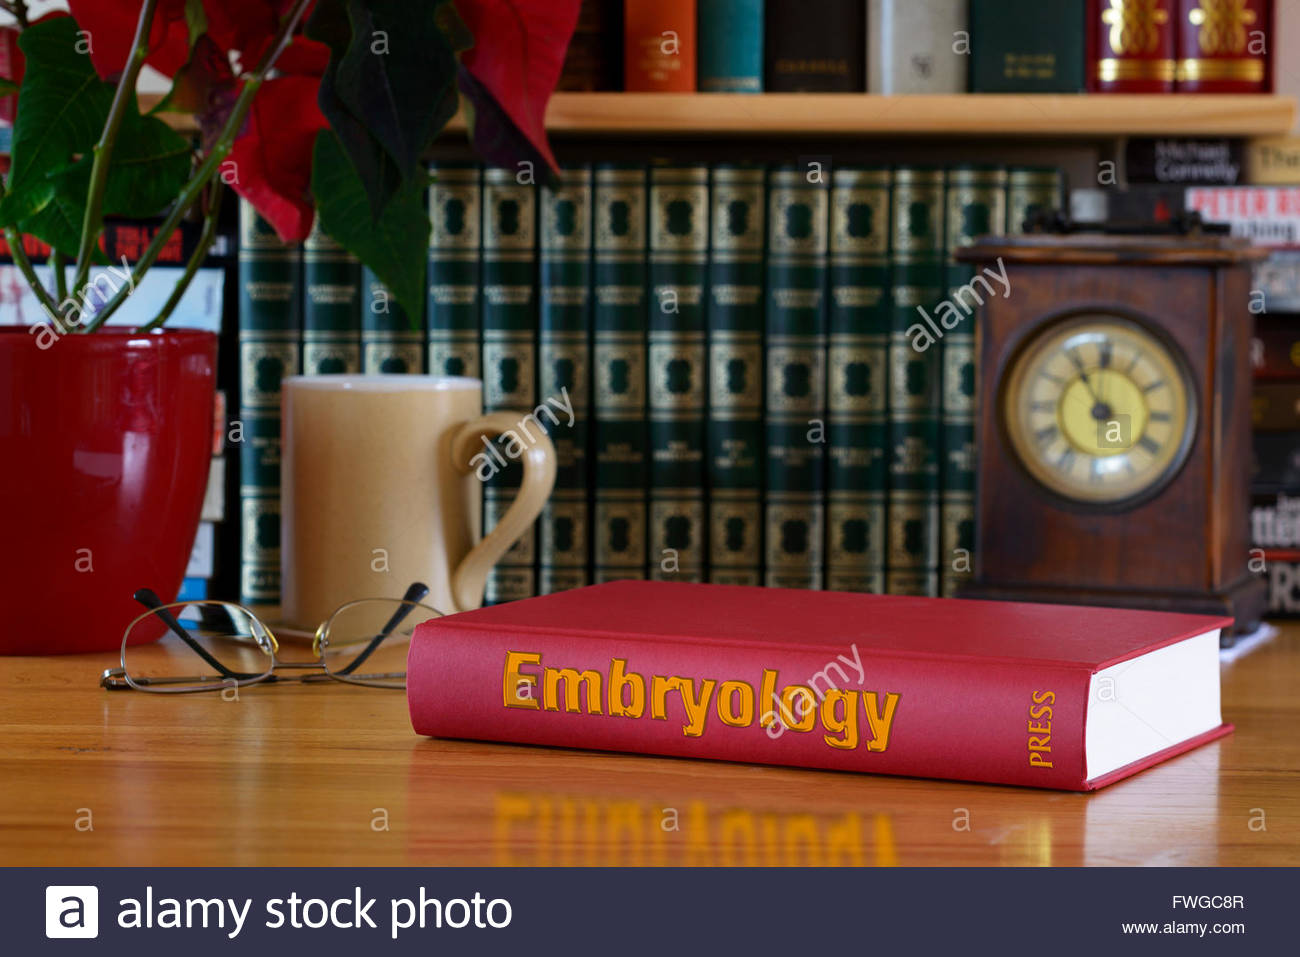 Embryology book title on desk, England - Stock Image